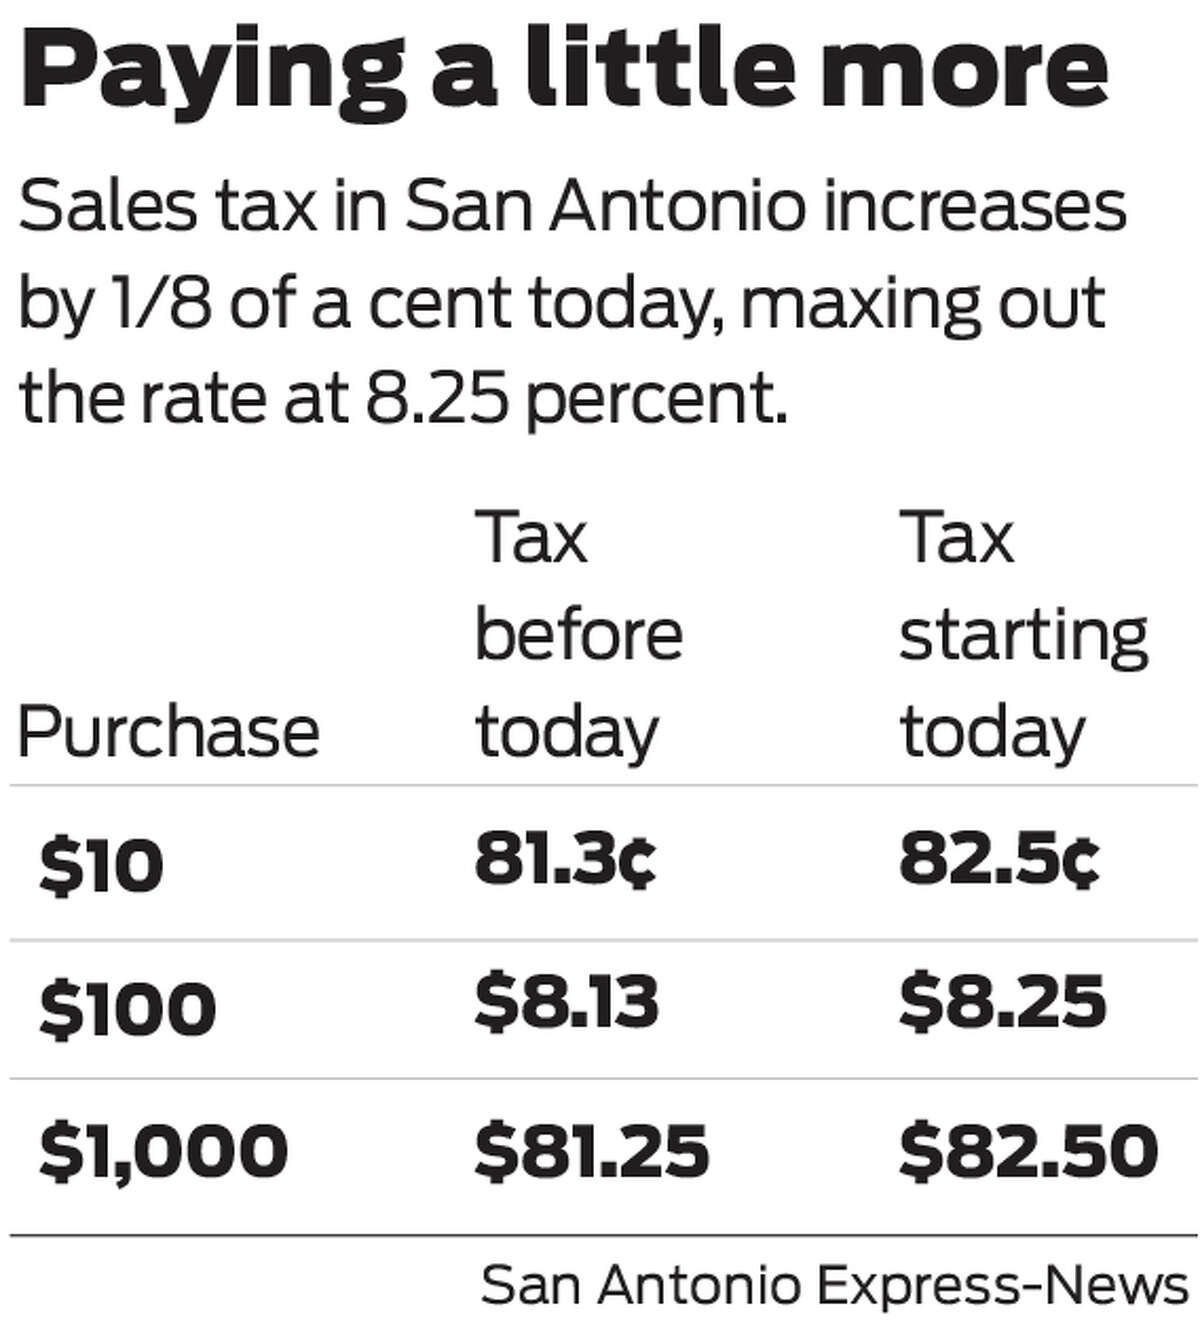 Sales tax rates rise today